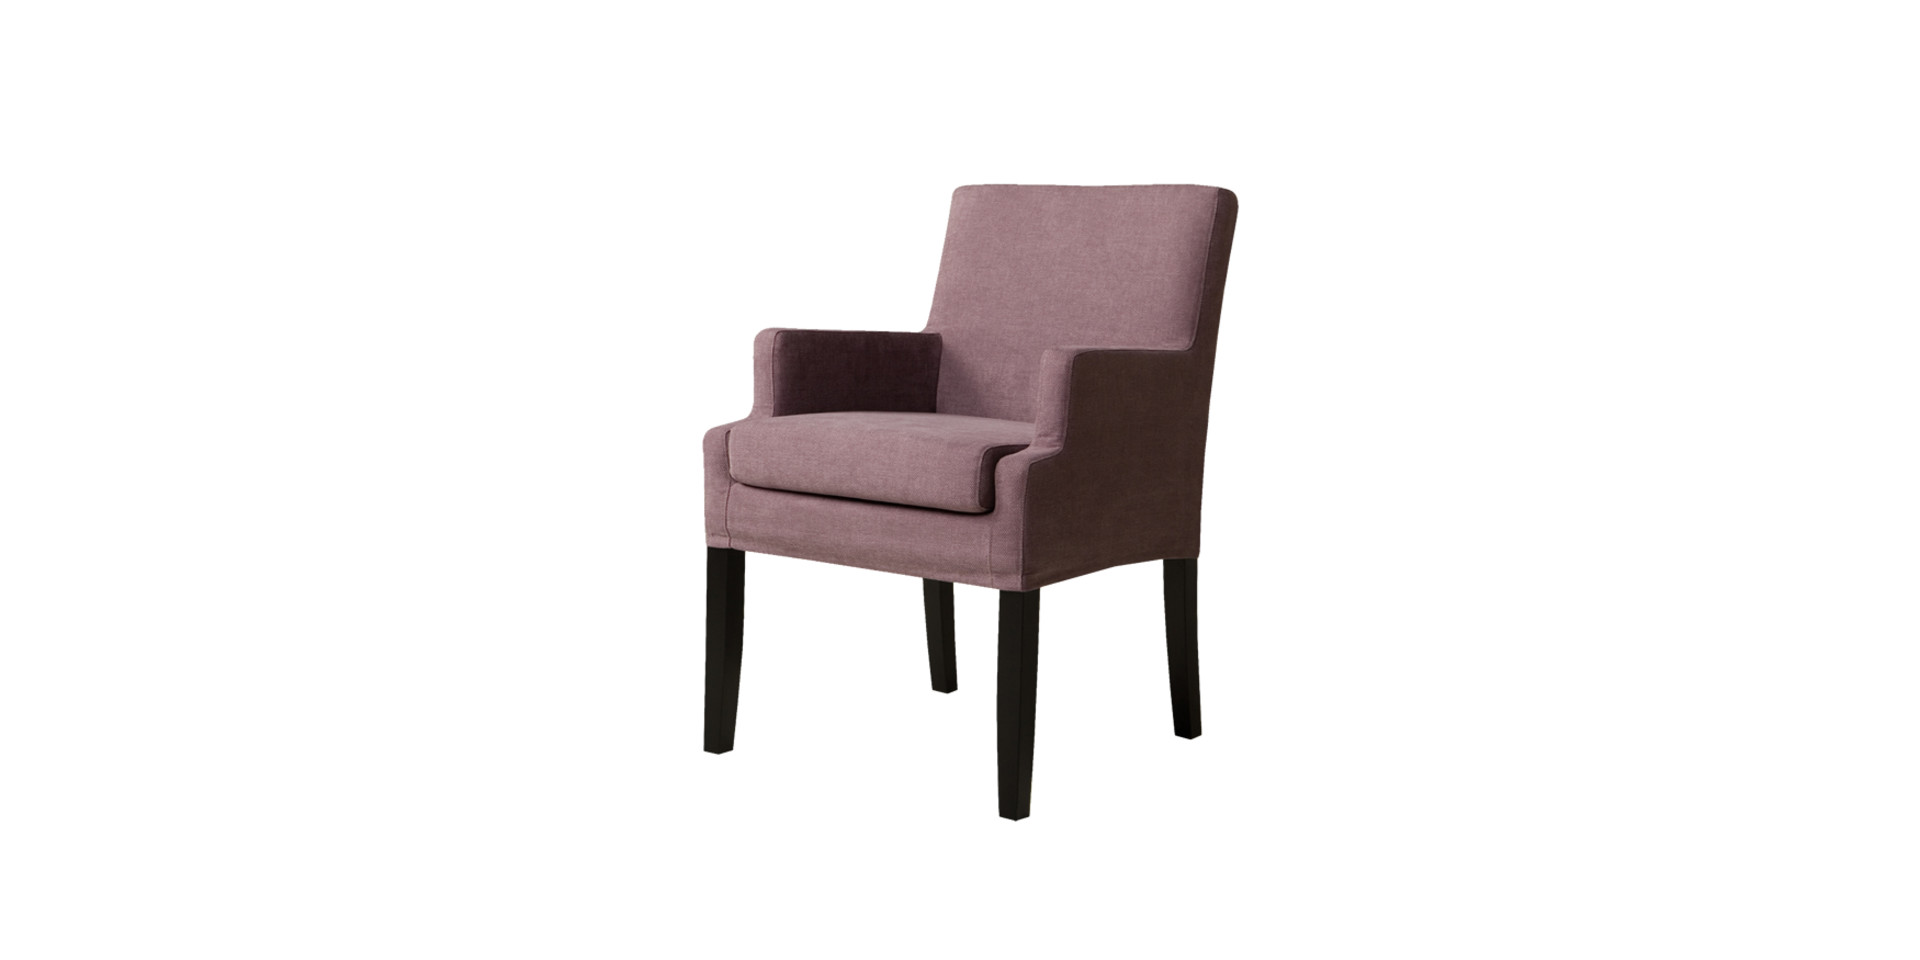 sits-merlin-fauteuil-chair_brest116_plum_4